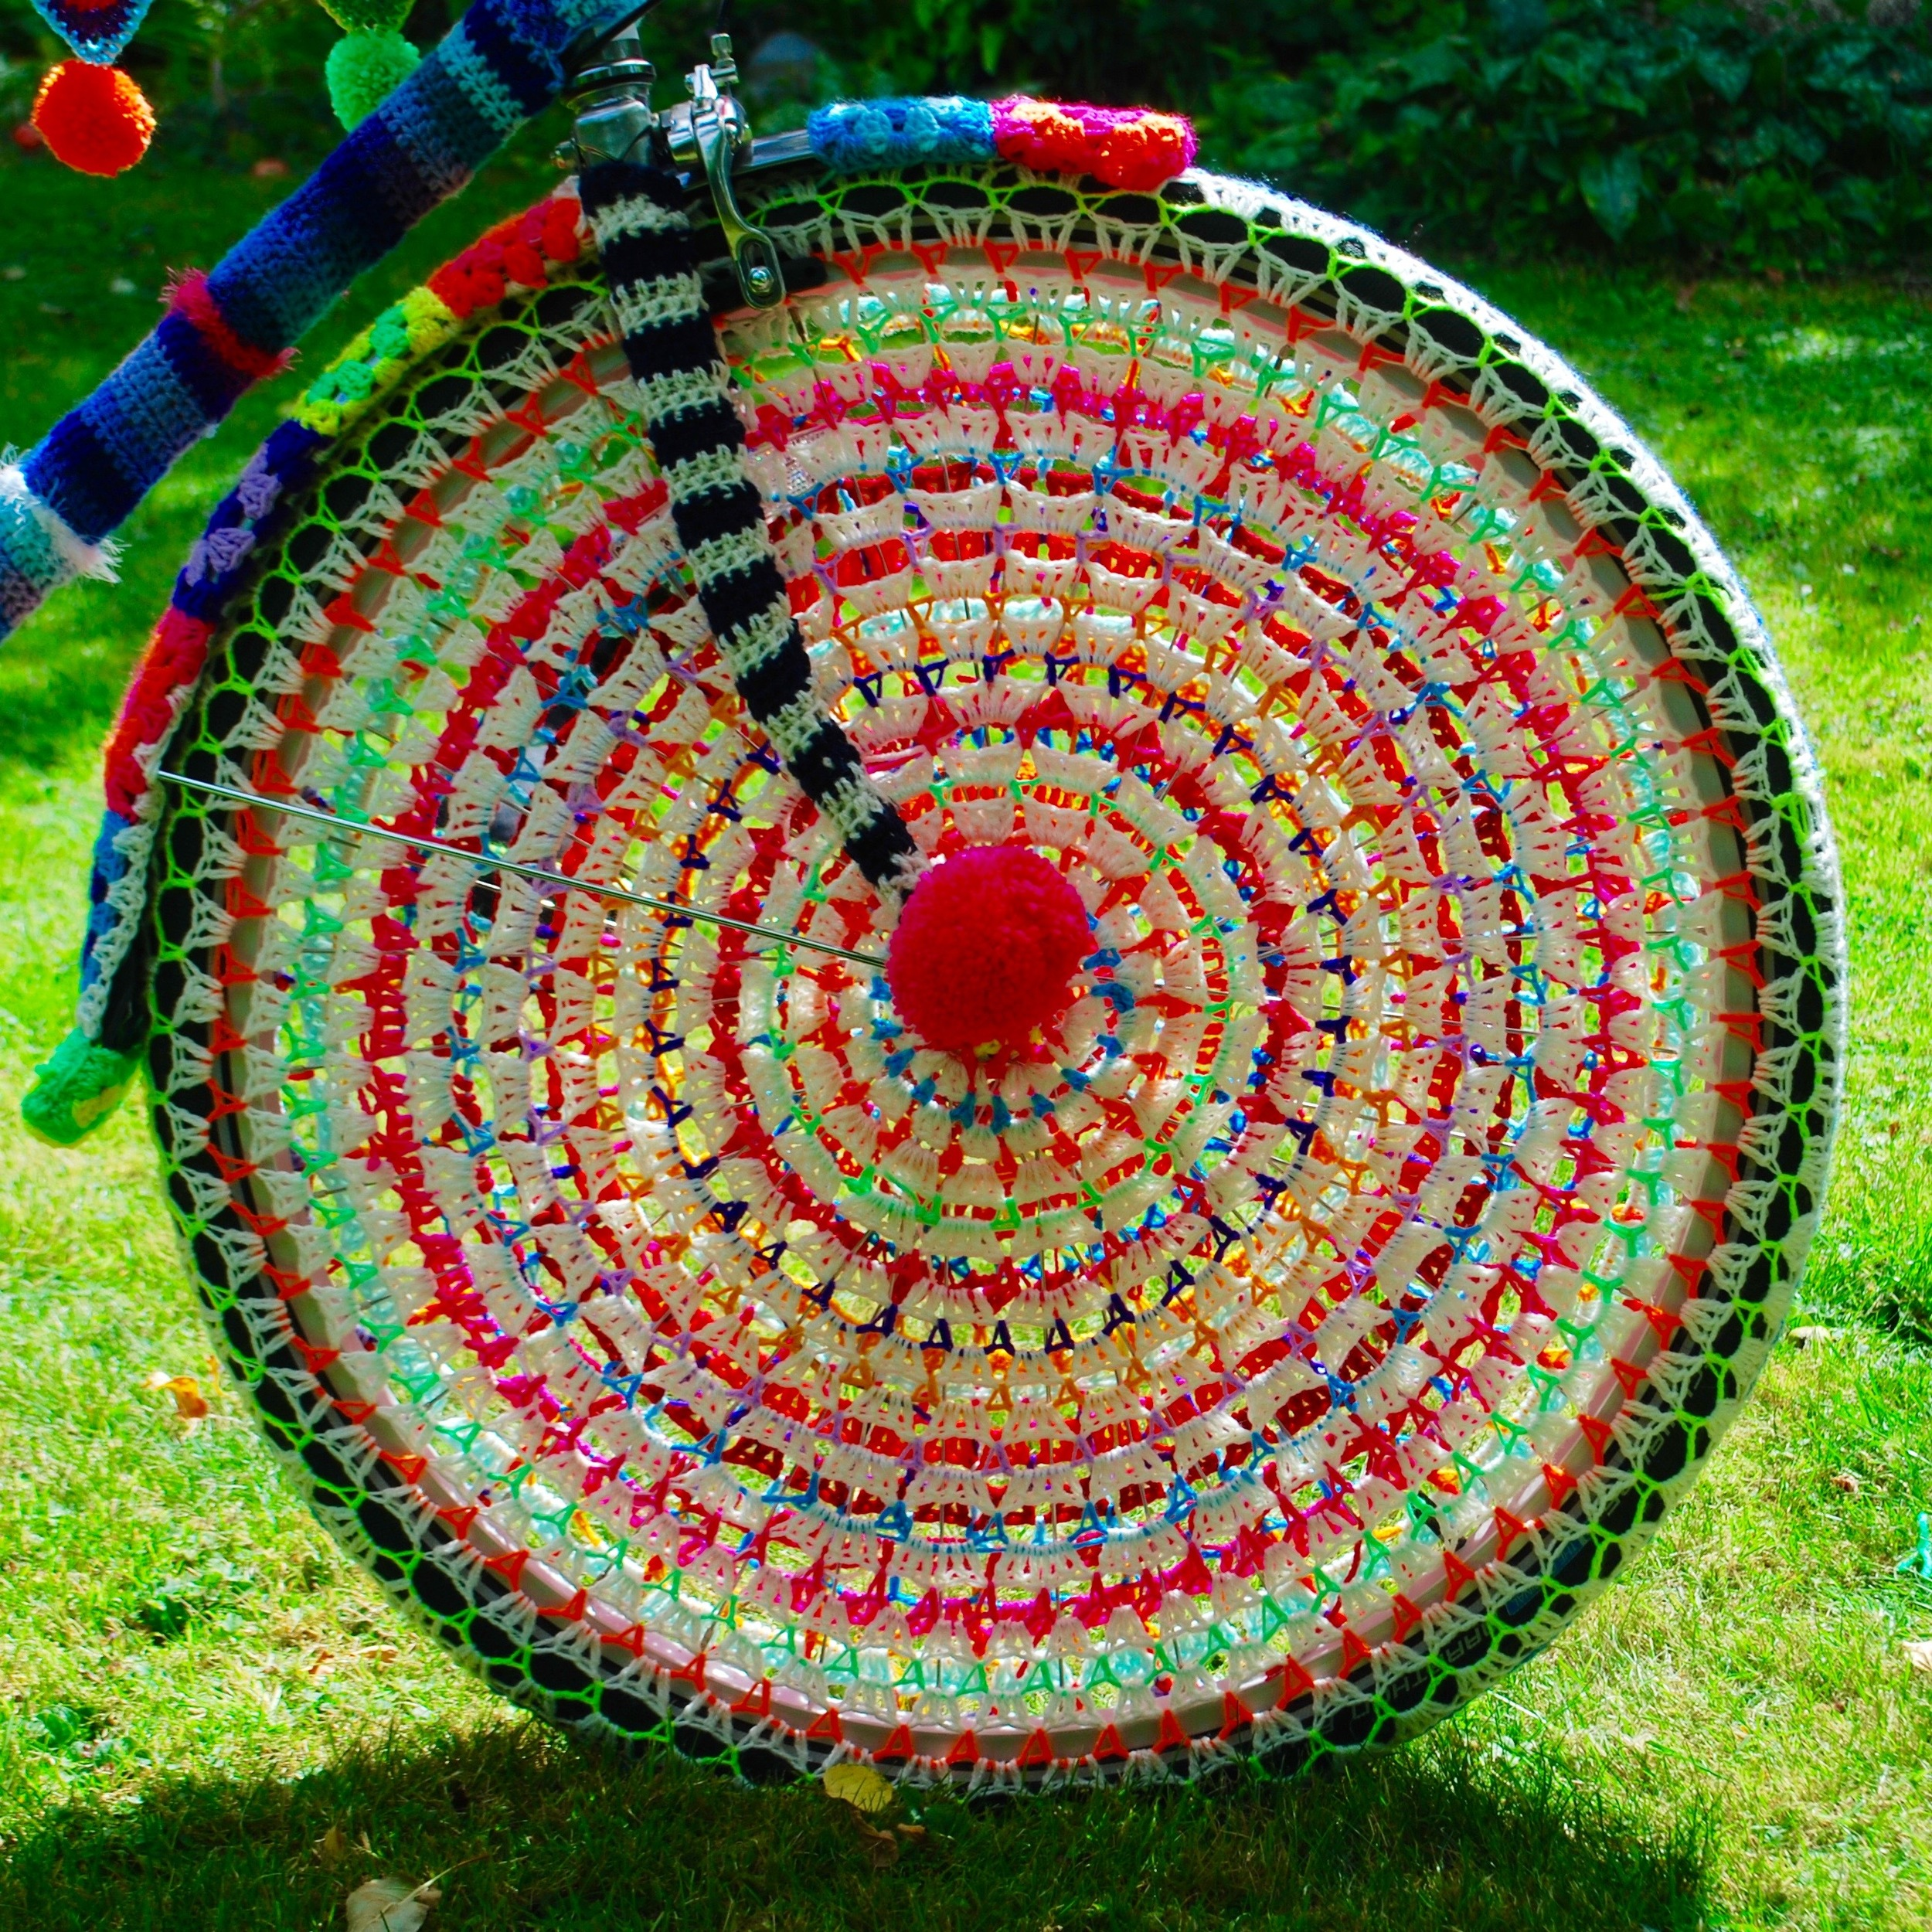 One side (white) of the crochet wheel for the yarn bomb bike by Emma Leith